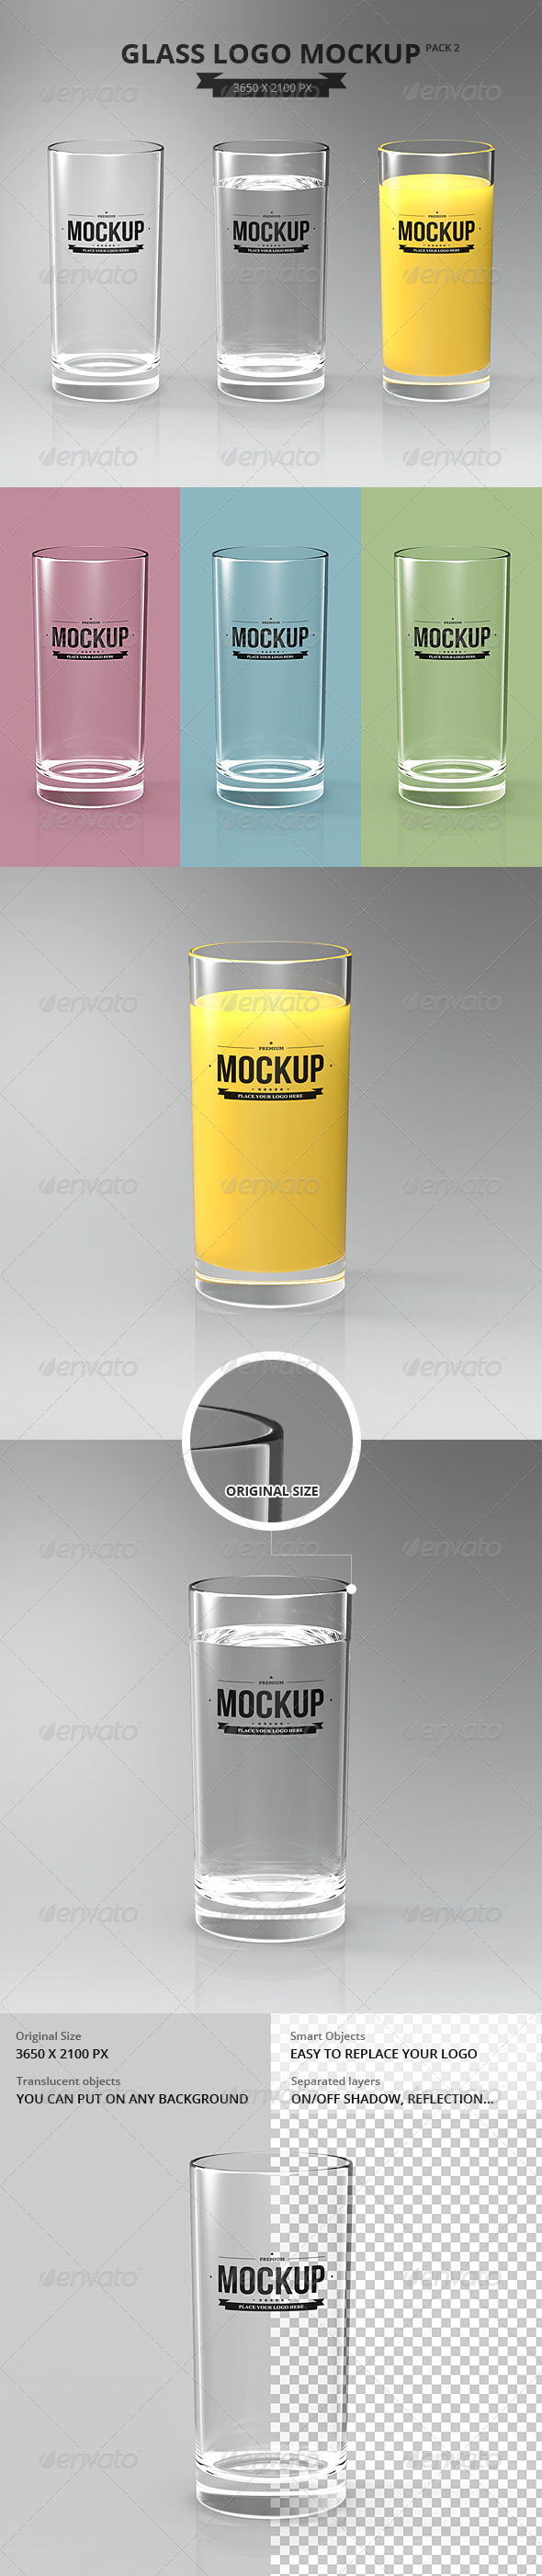 Glasses Logo Mockup Pack 2 - Food and Drink Packaging